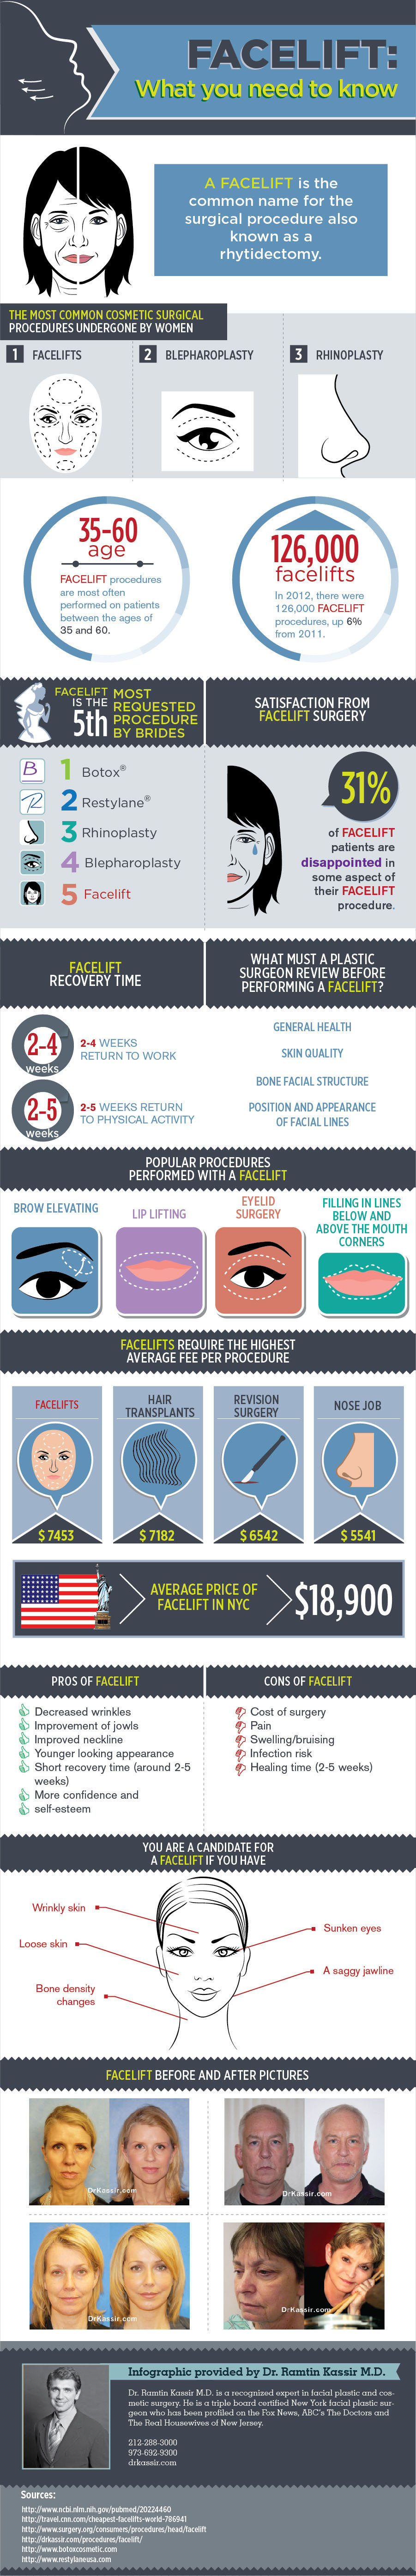 All About Facelifts-Infographic